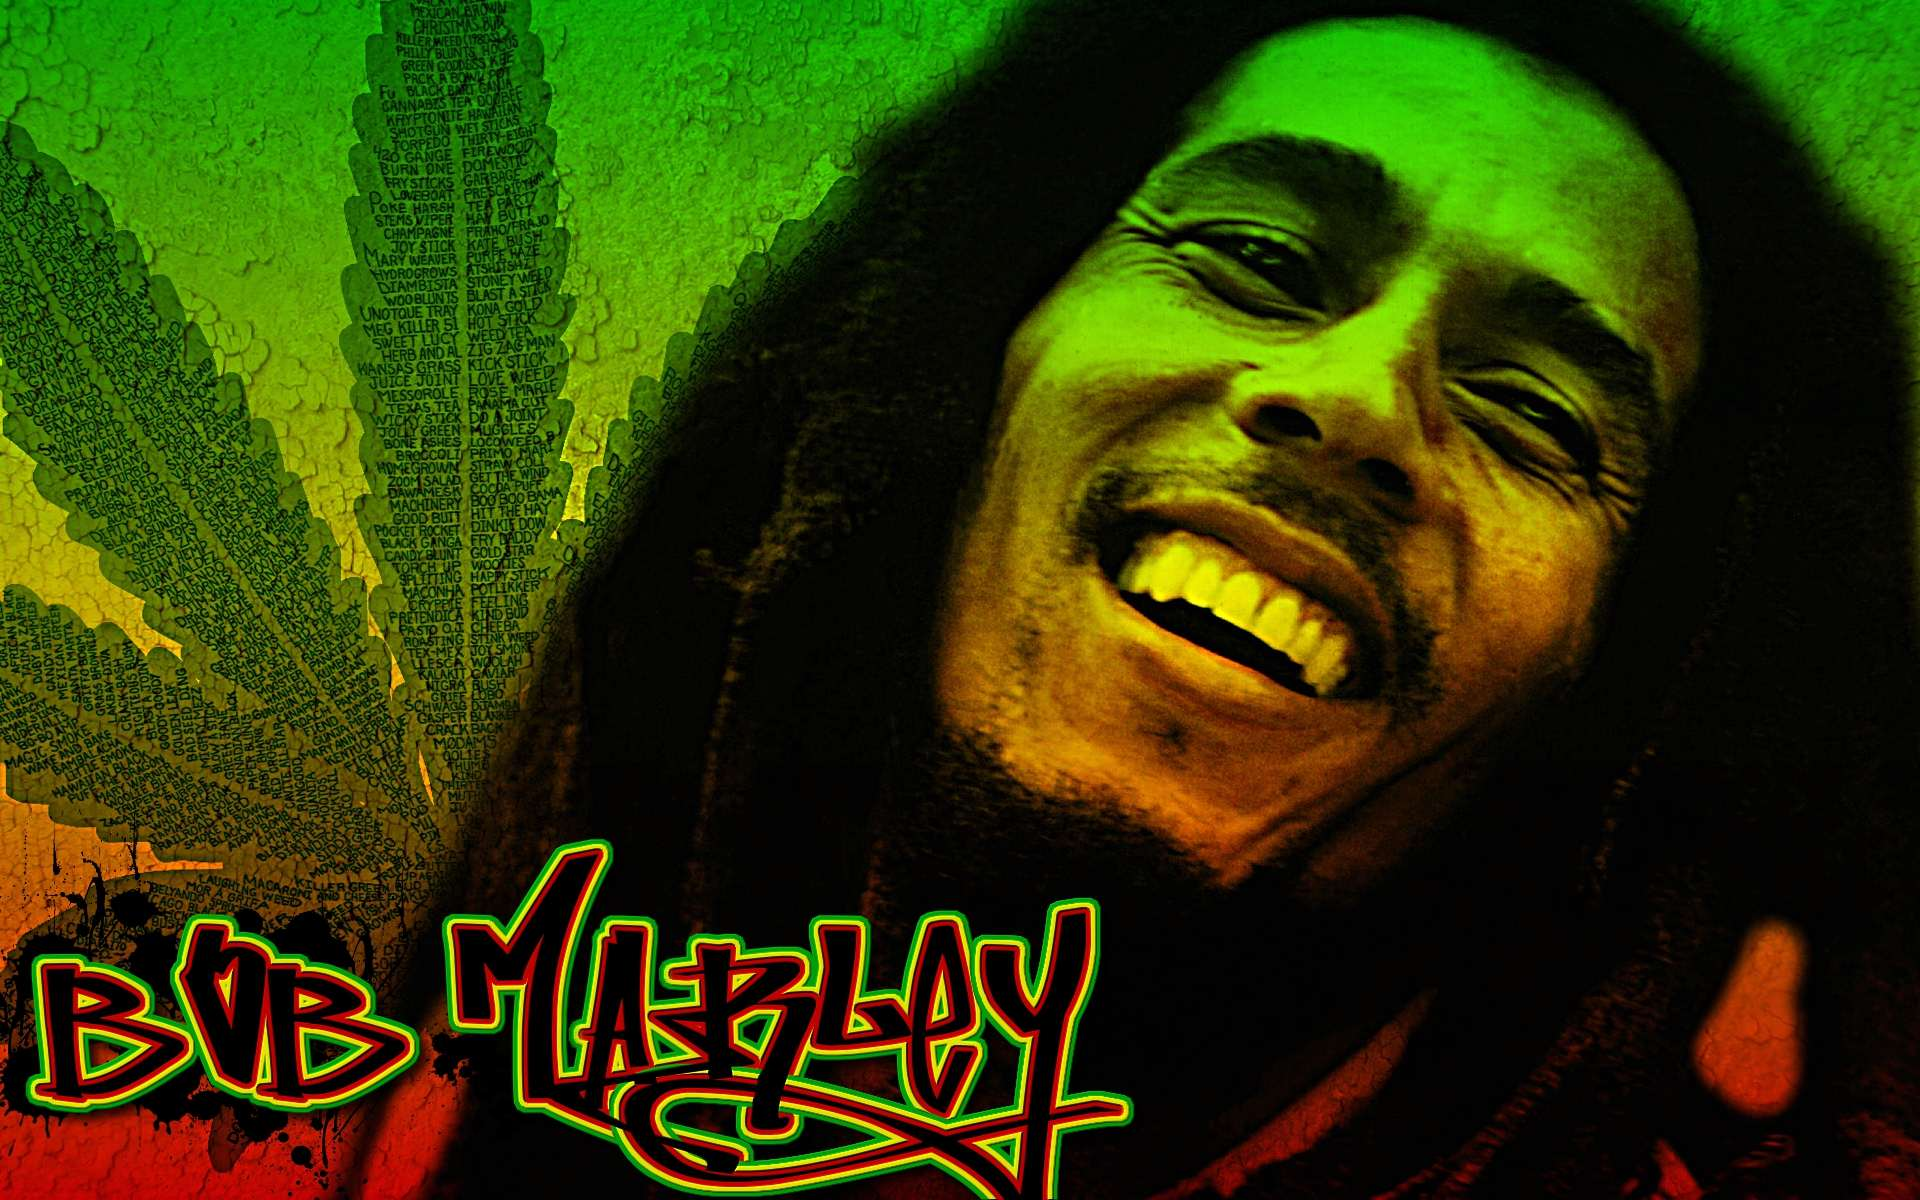 Bob Marley Wallpaper HD Best Collection Free Download